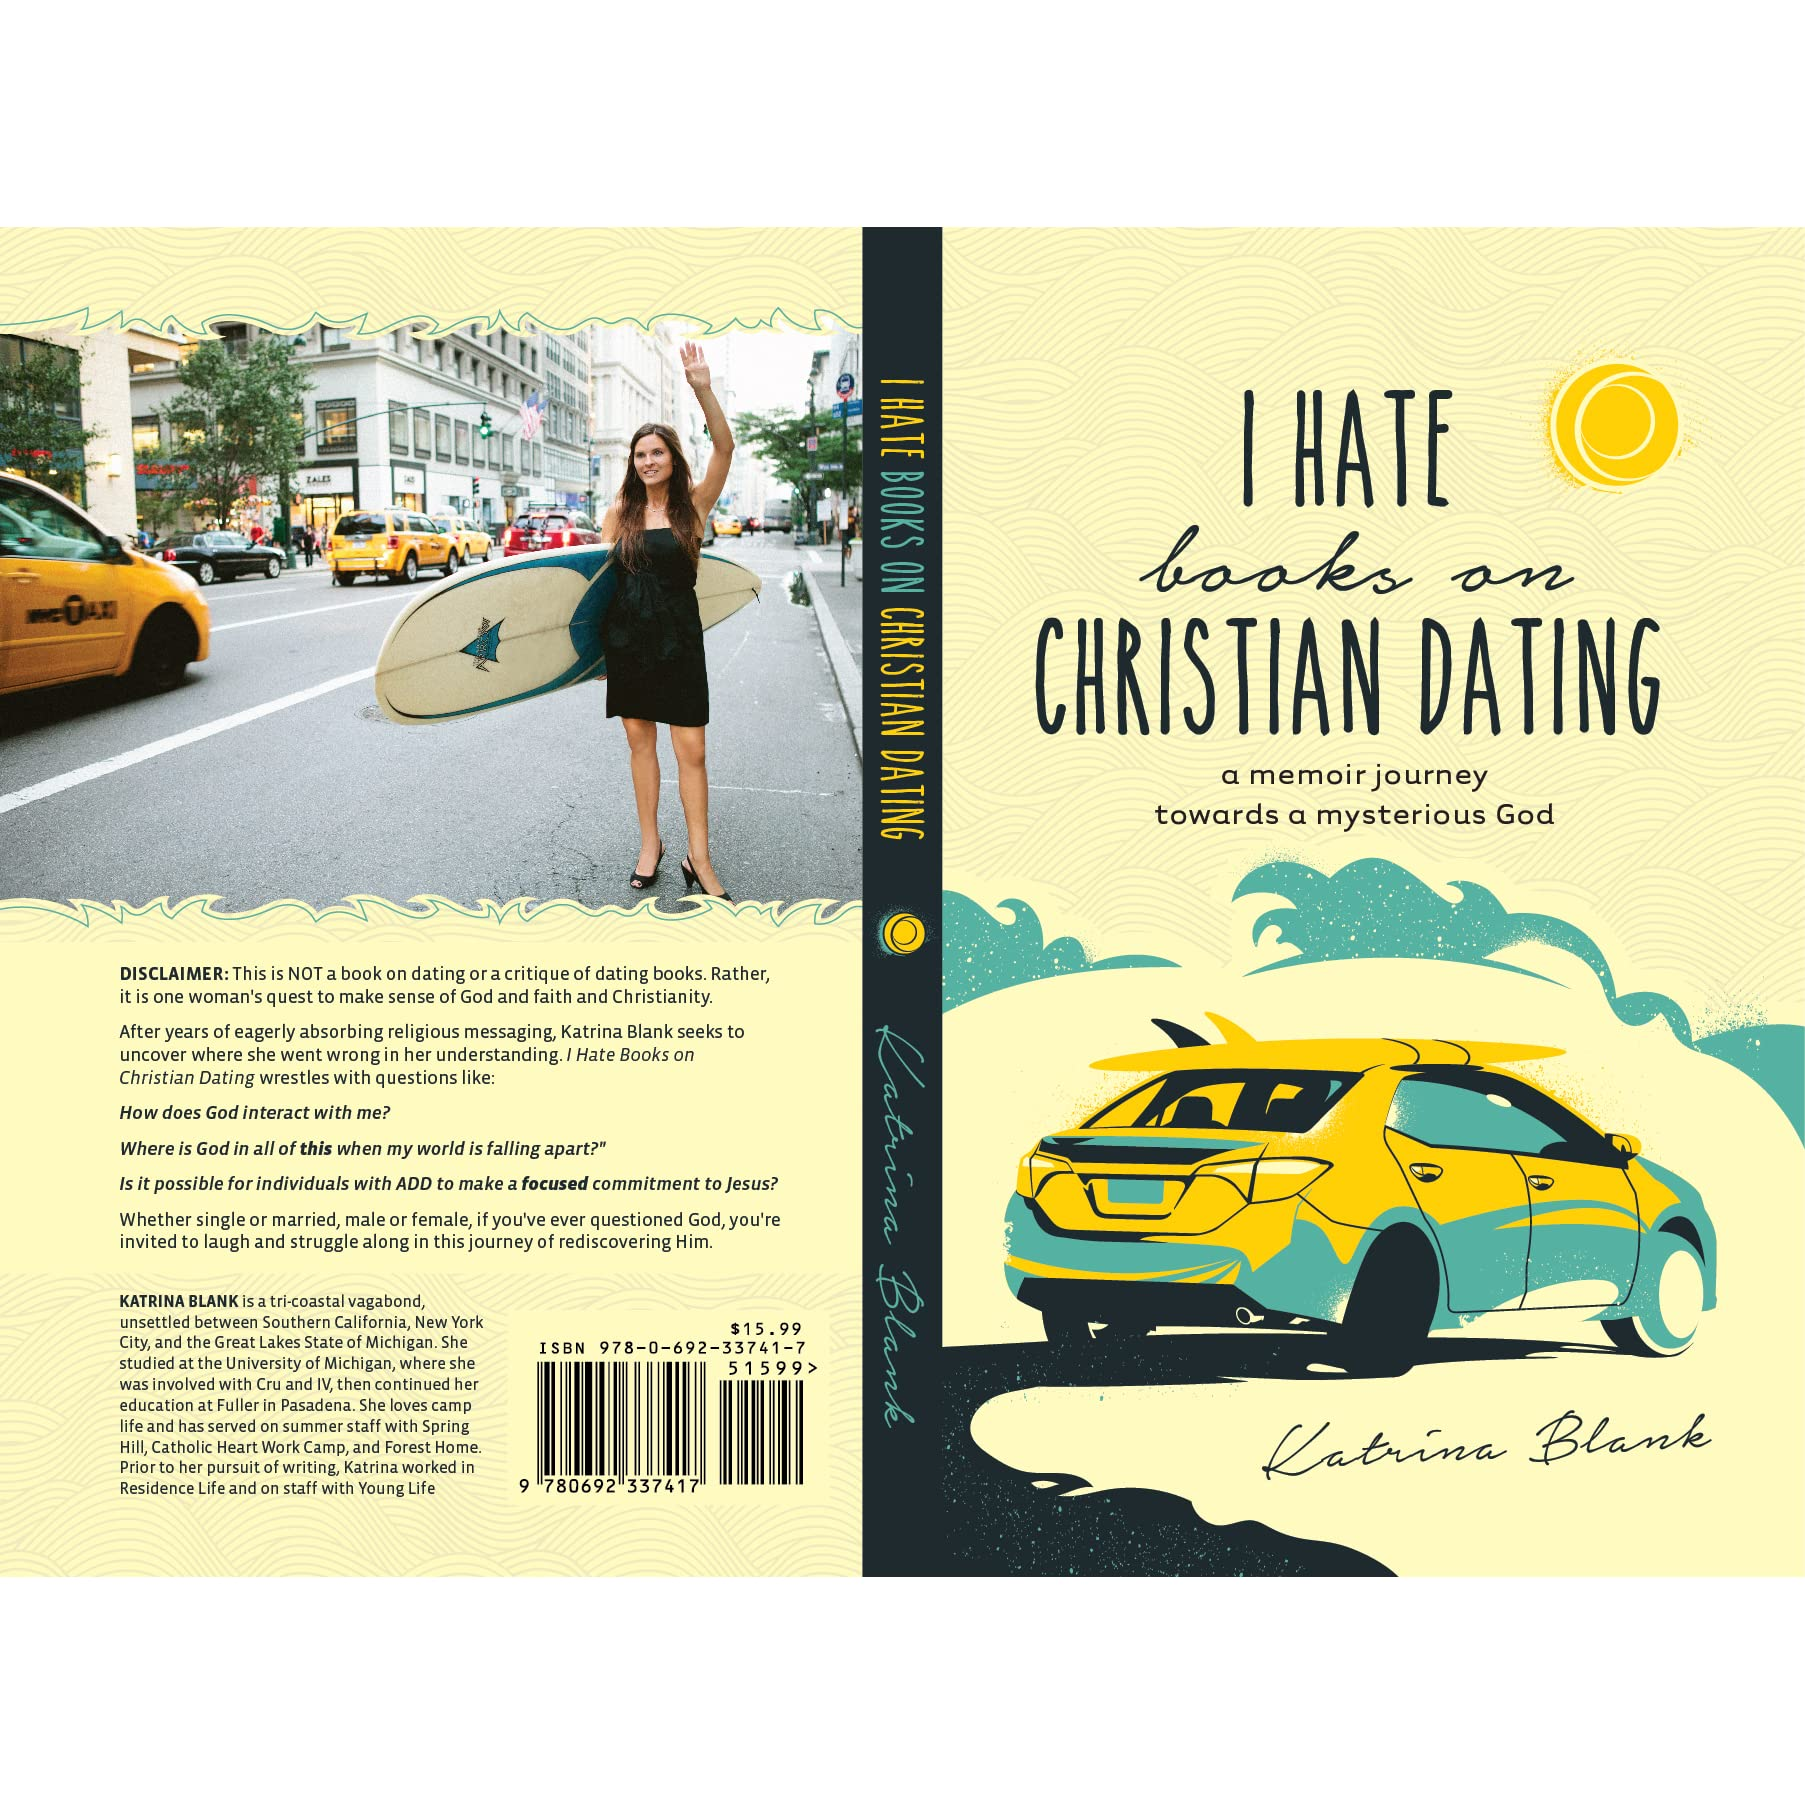 Christian dating purity books